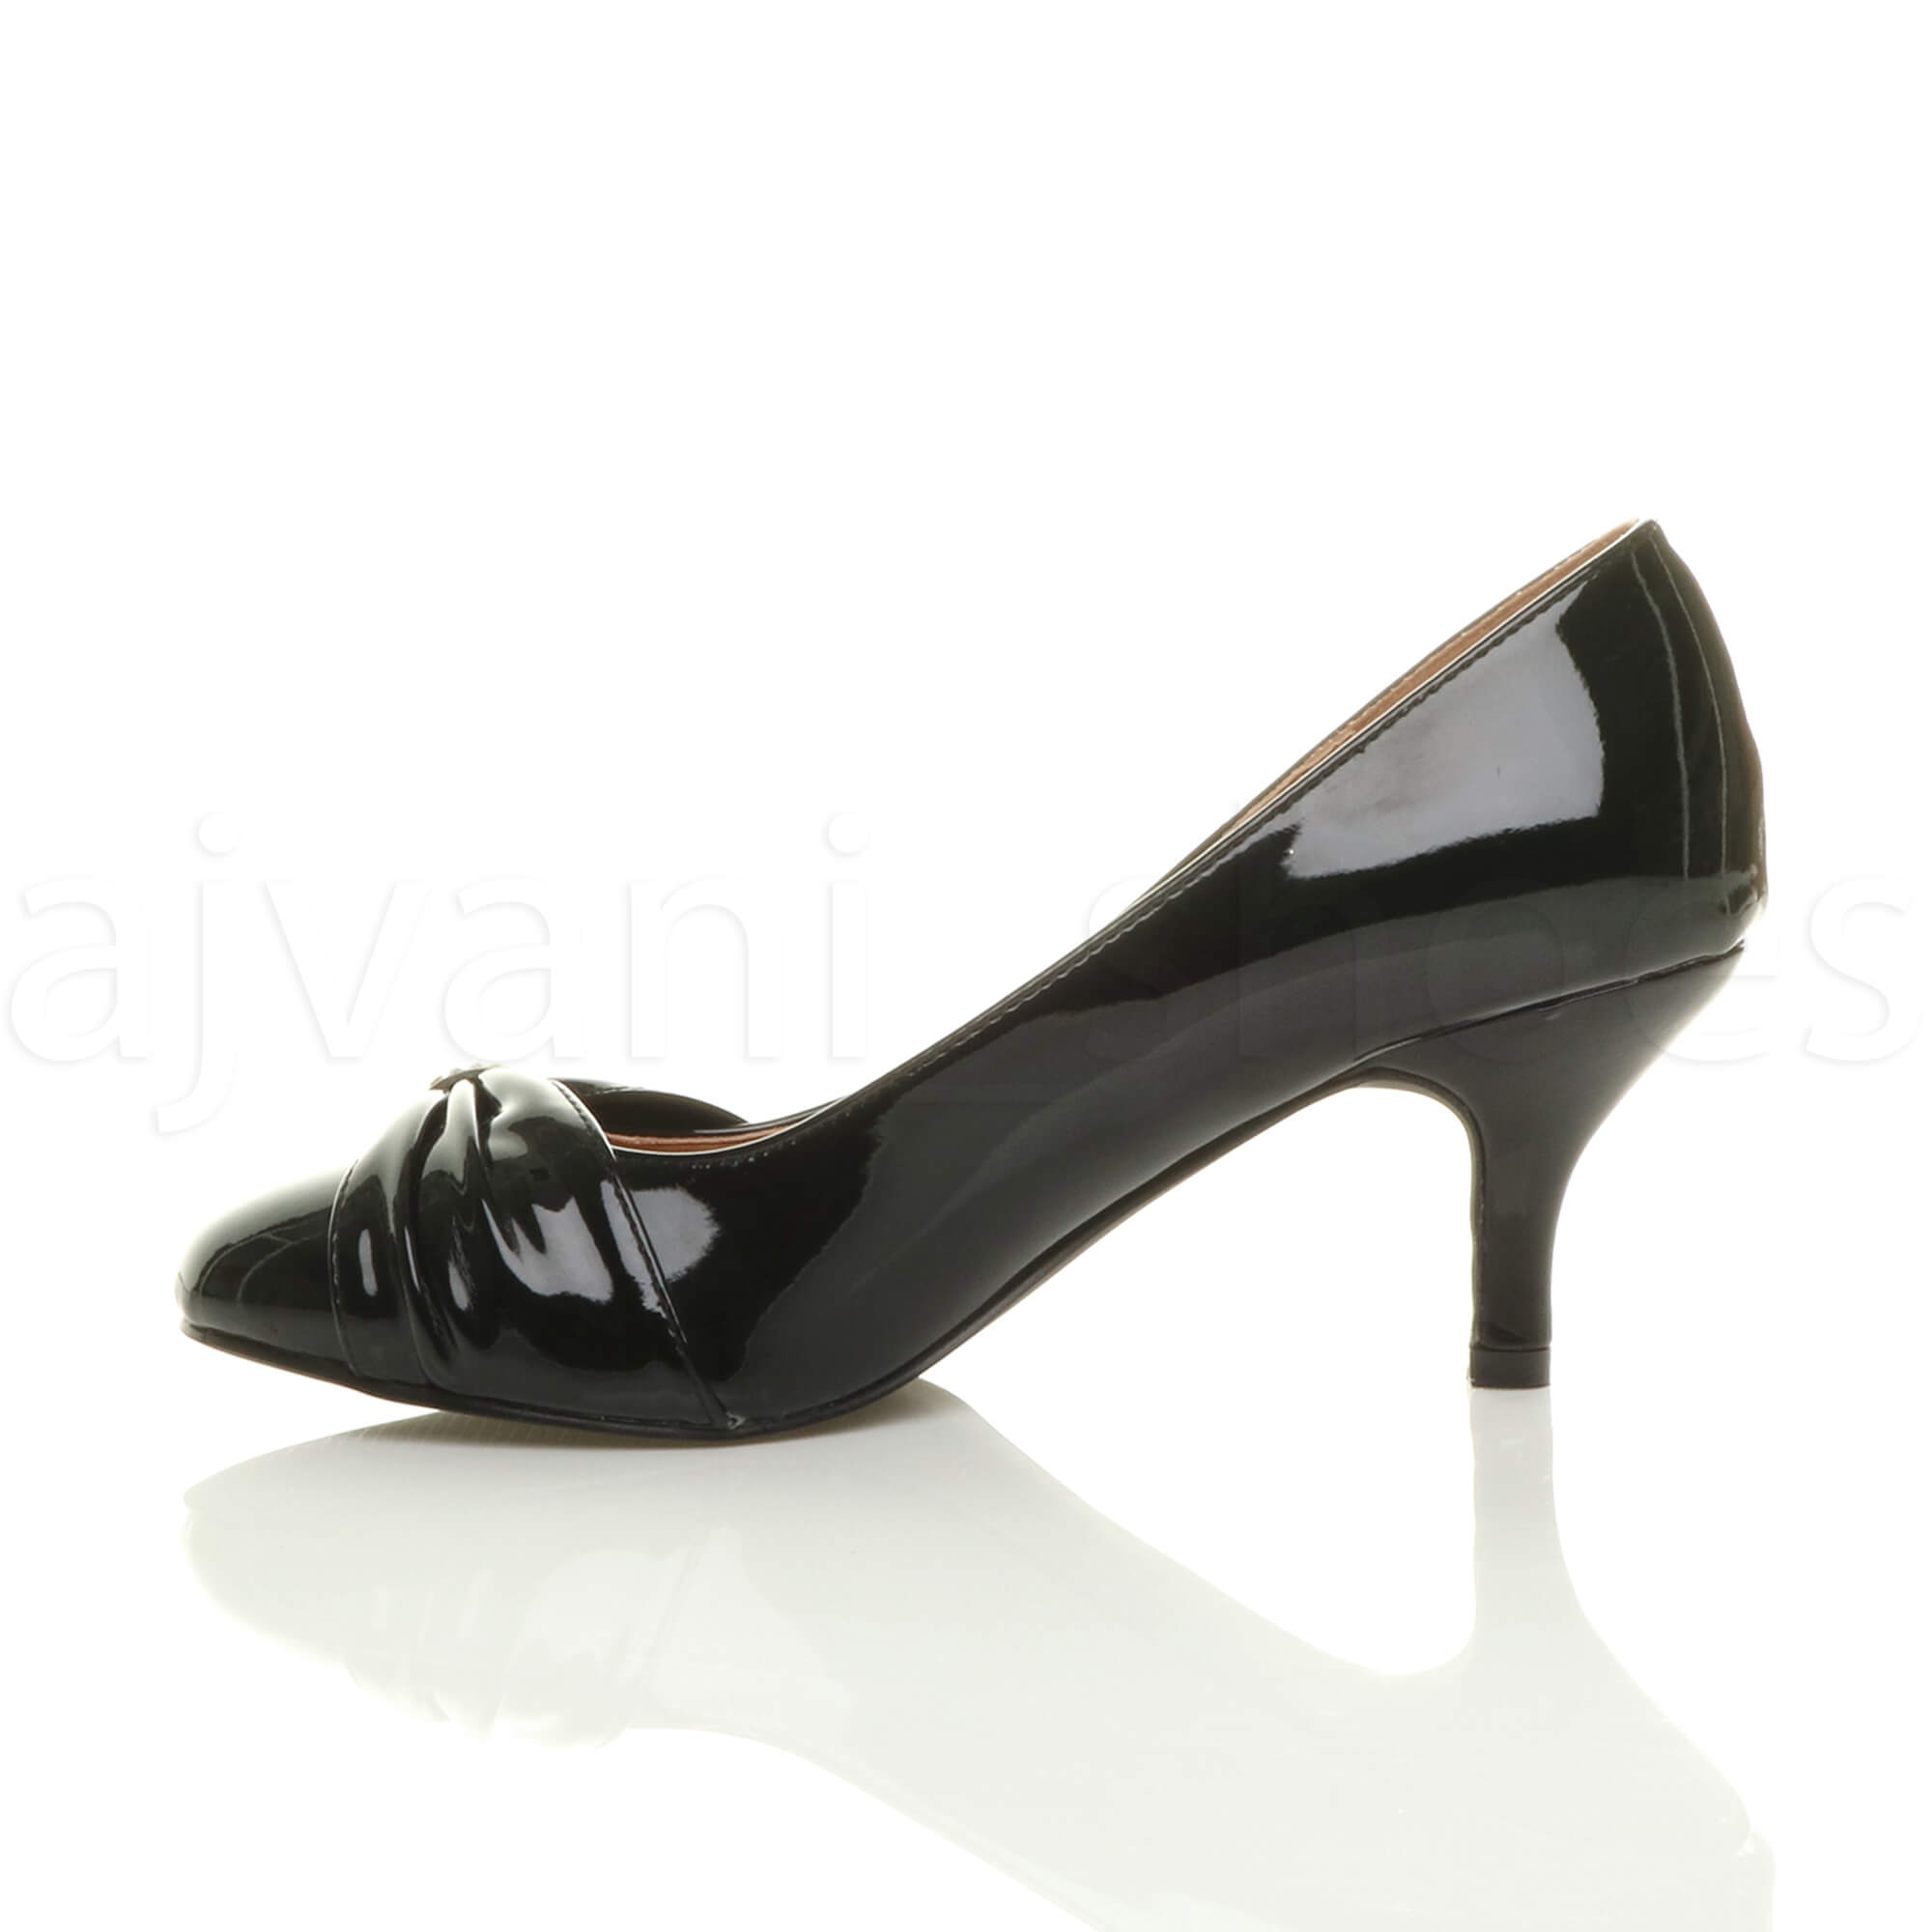 WOMENS-LADIES-MID-HEEL-RUCHED-DIAMANTE-WEDDING-PROM-EVENING-COURT-SHOES-SIZE thumbnail 12